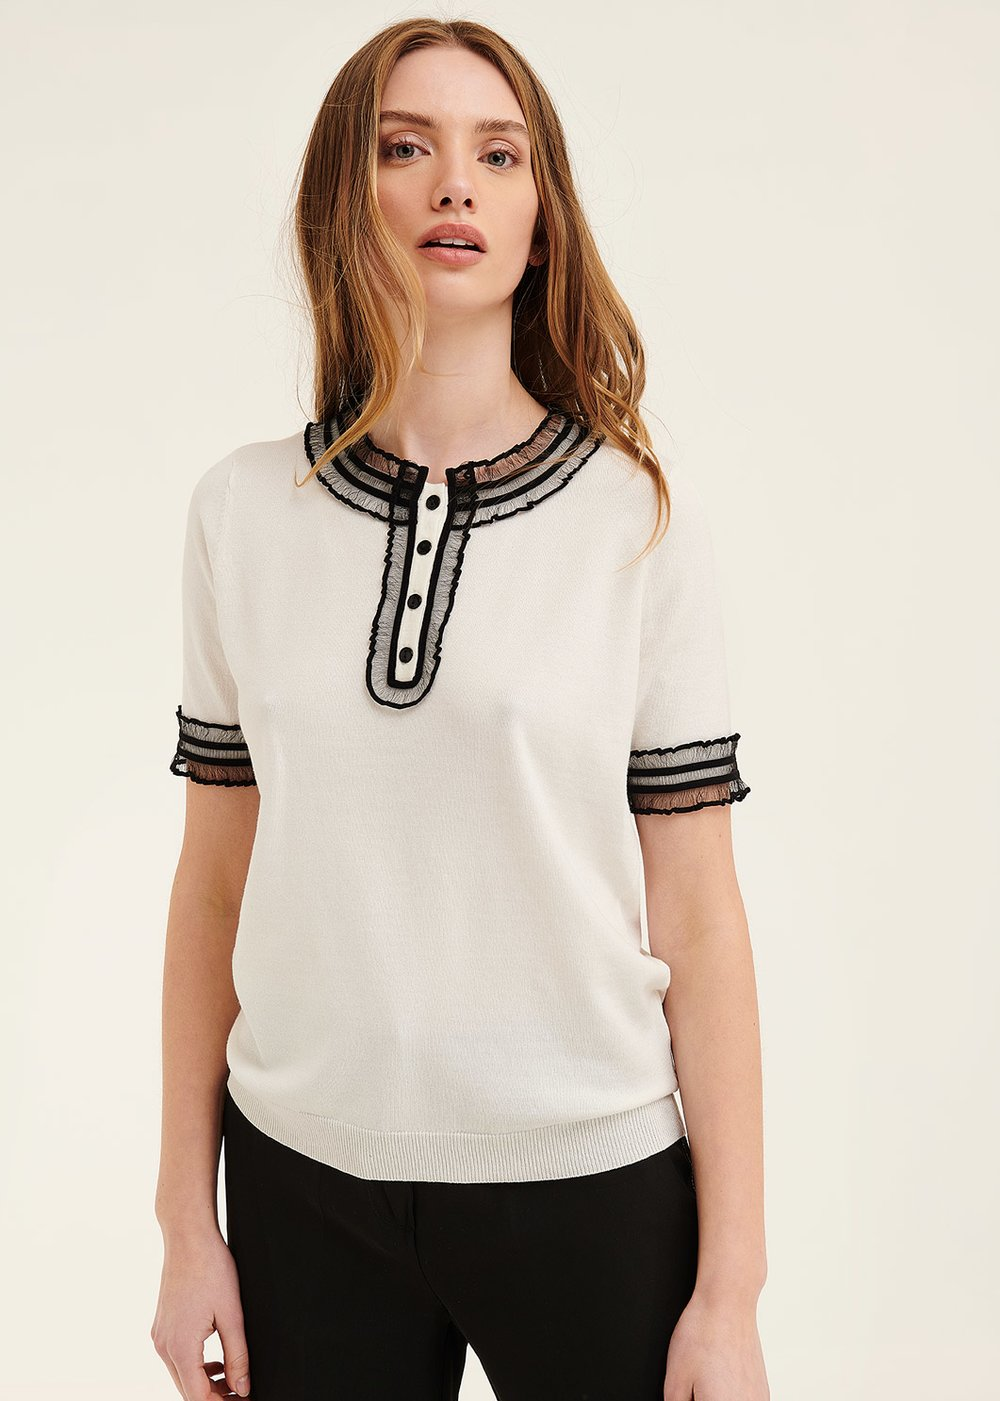 Mara t-shirt with tulle details - White - Woman